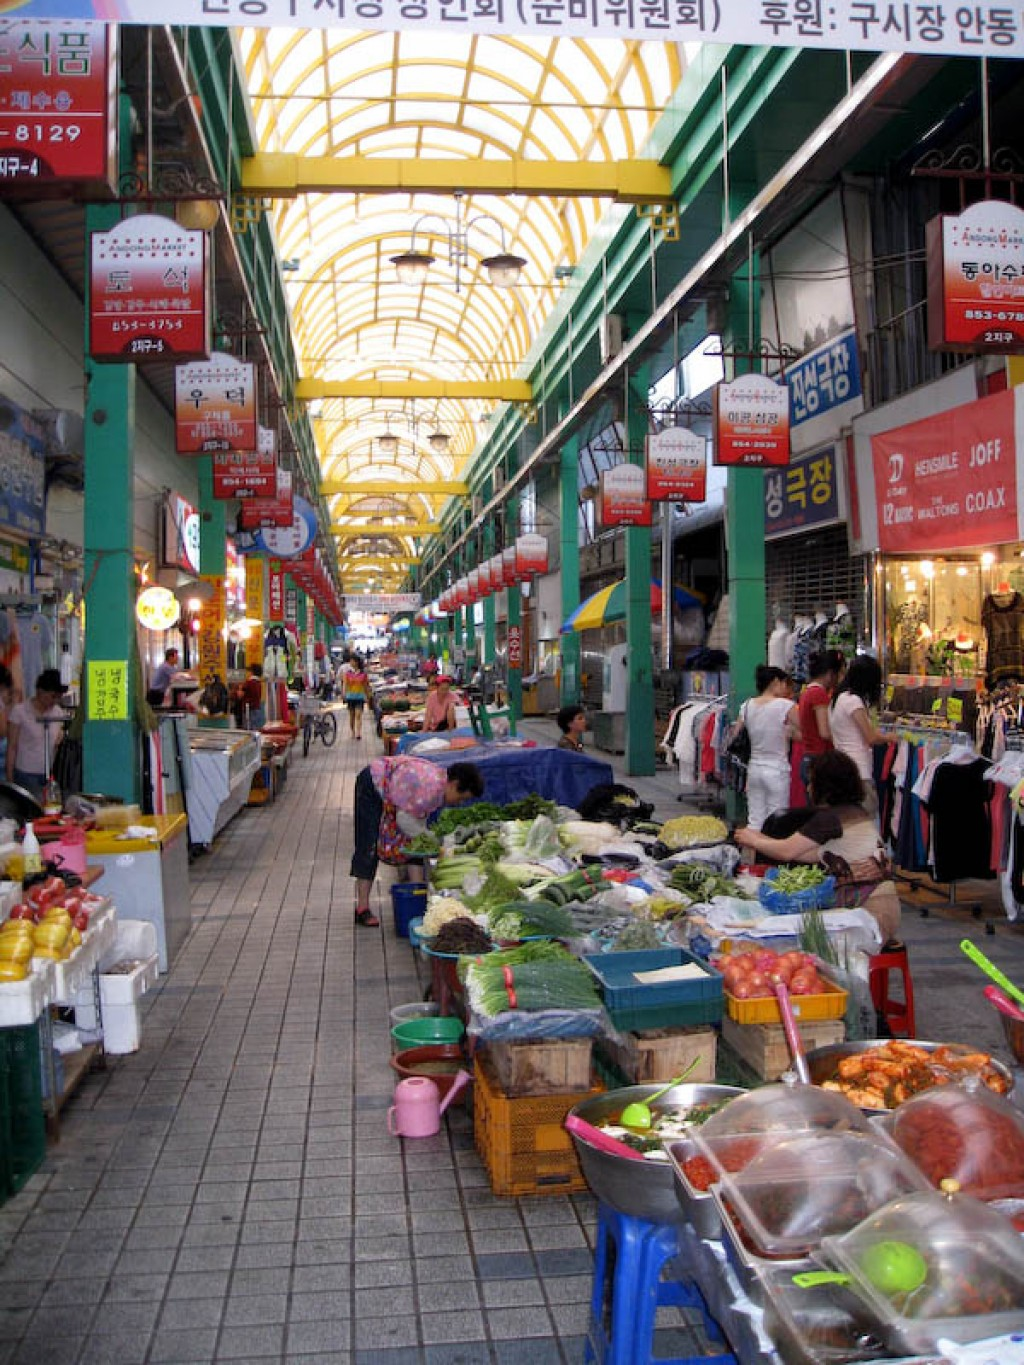 Food stalls in the Andong Gu Market